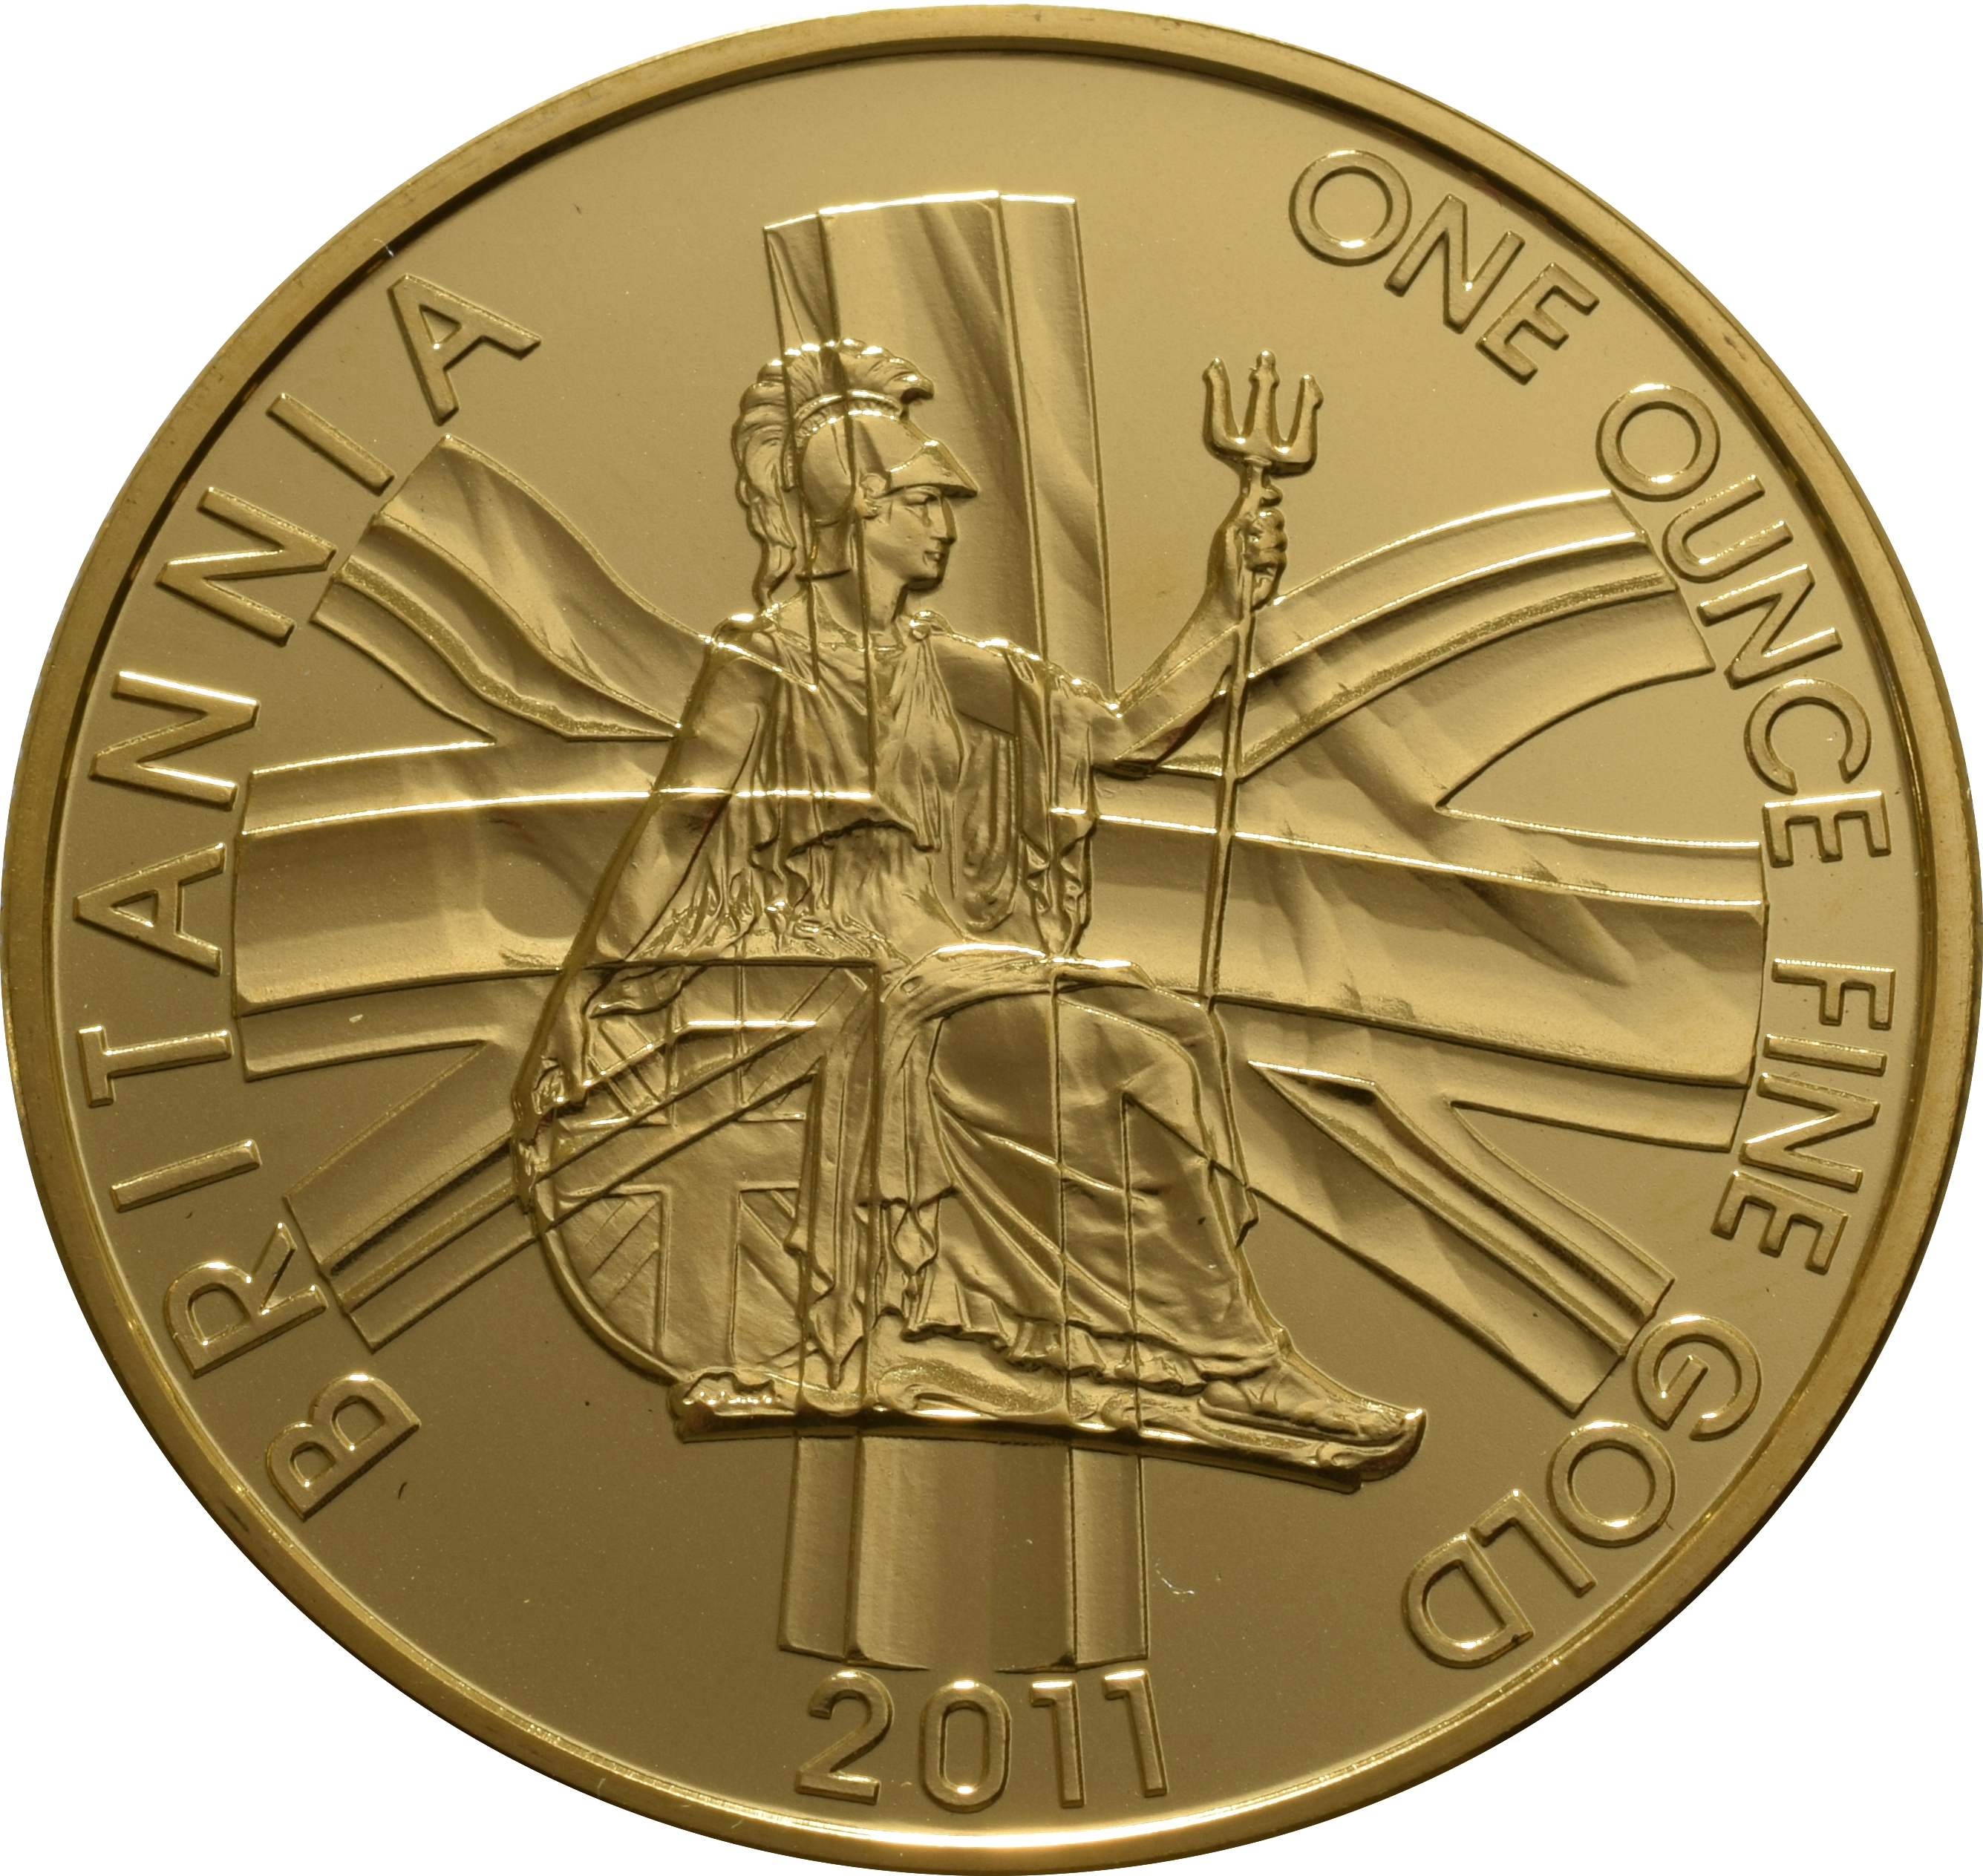 2011 Gold Britannia One Ounce Coin 163 1 080